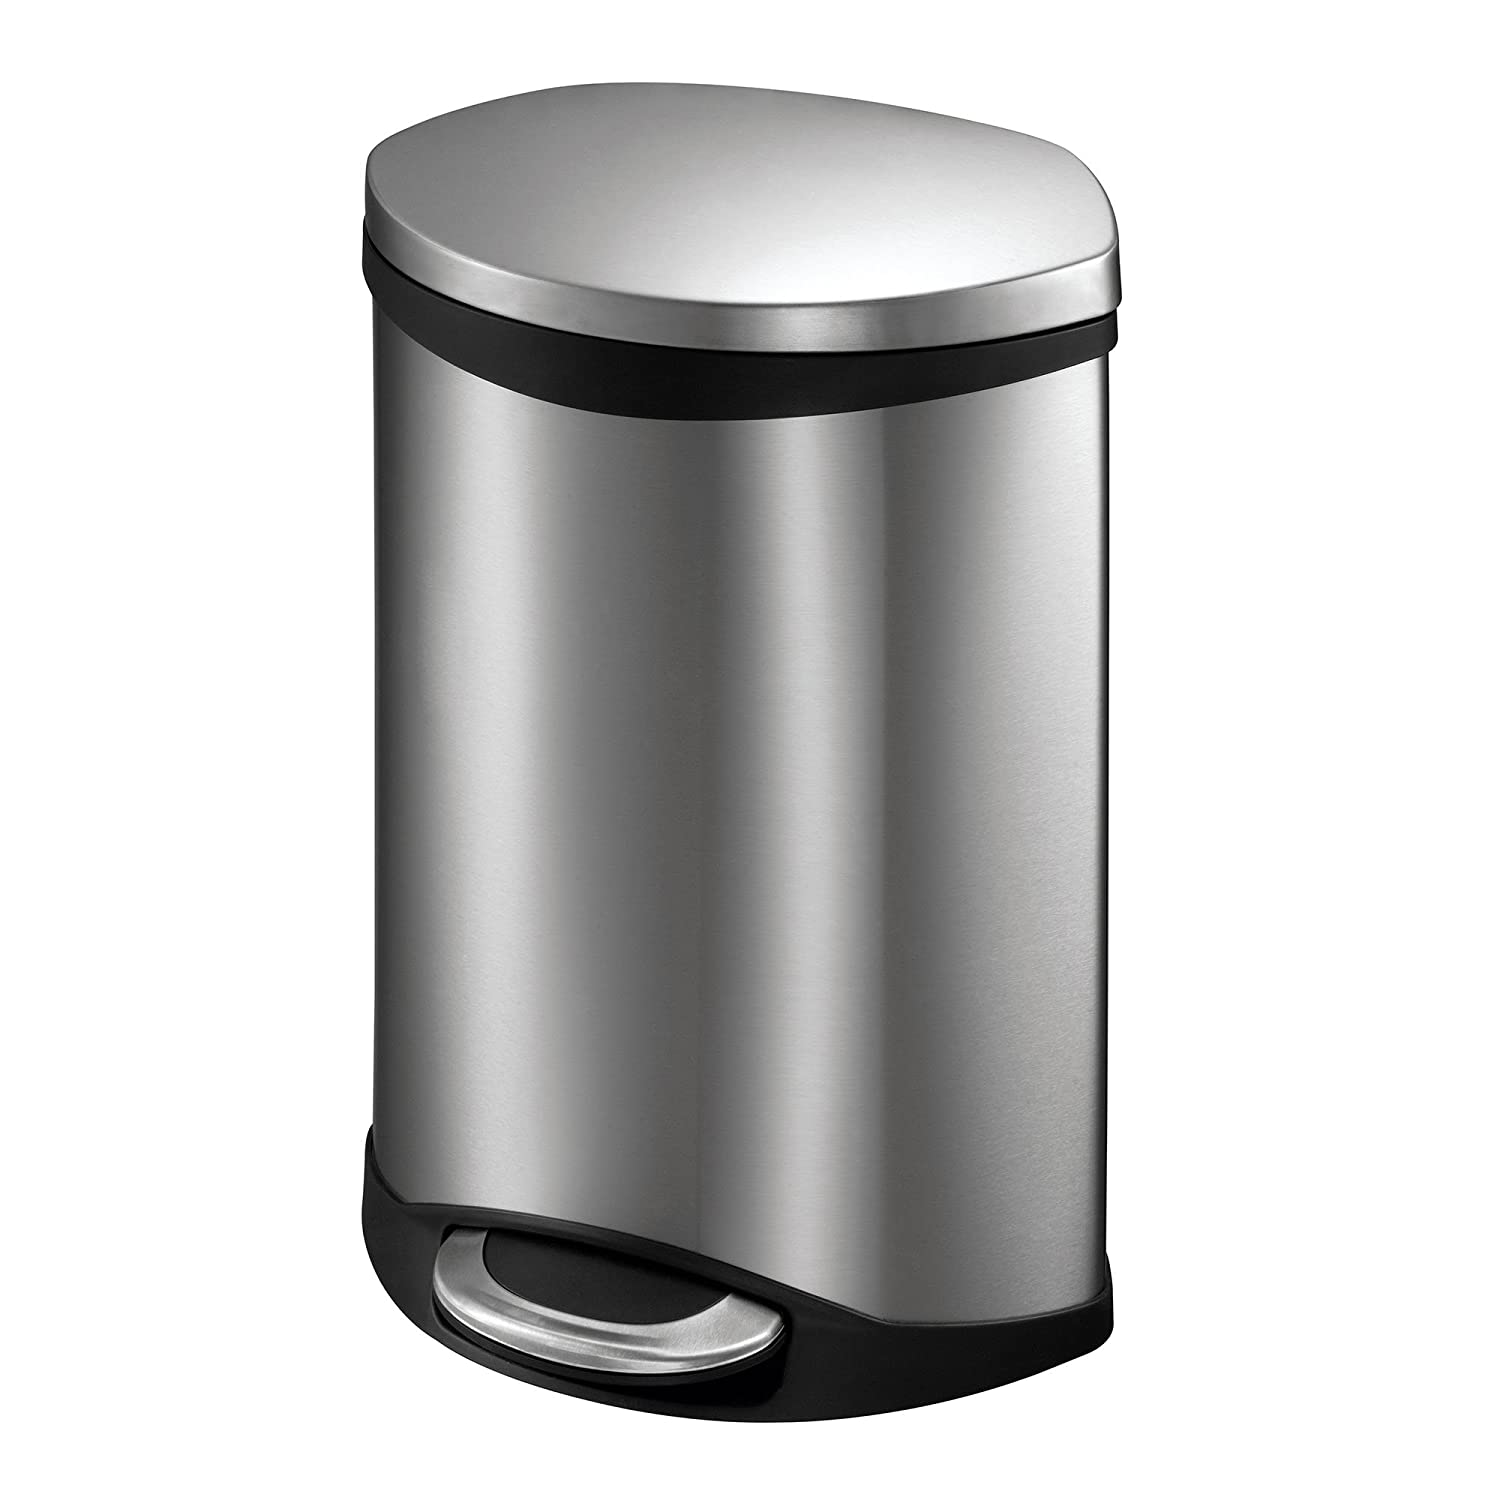 eko 1 oblong shell 1 5 gallon stainless steel step trash can